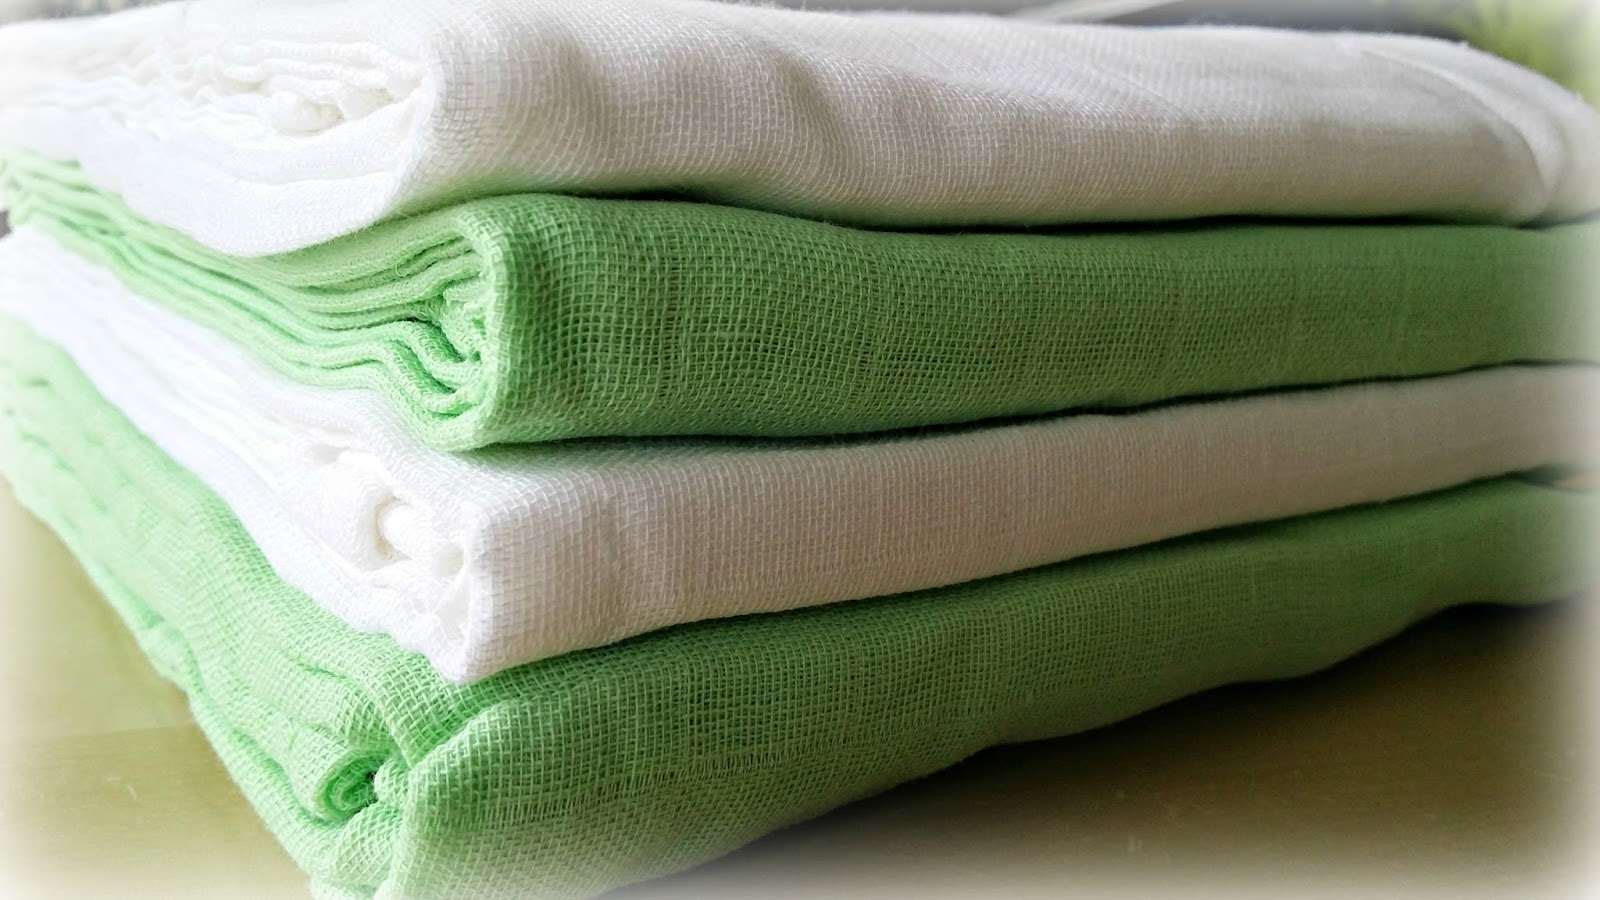 How to Wash an Electric Blanket – Step By Step to Wash the Blanket